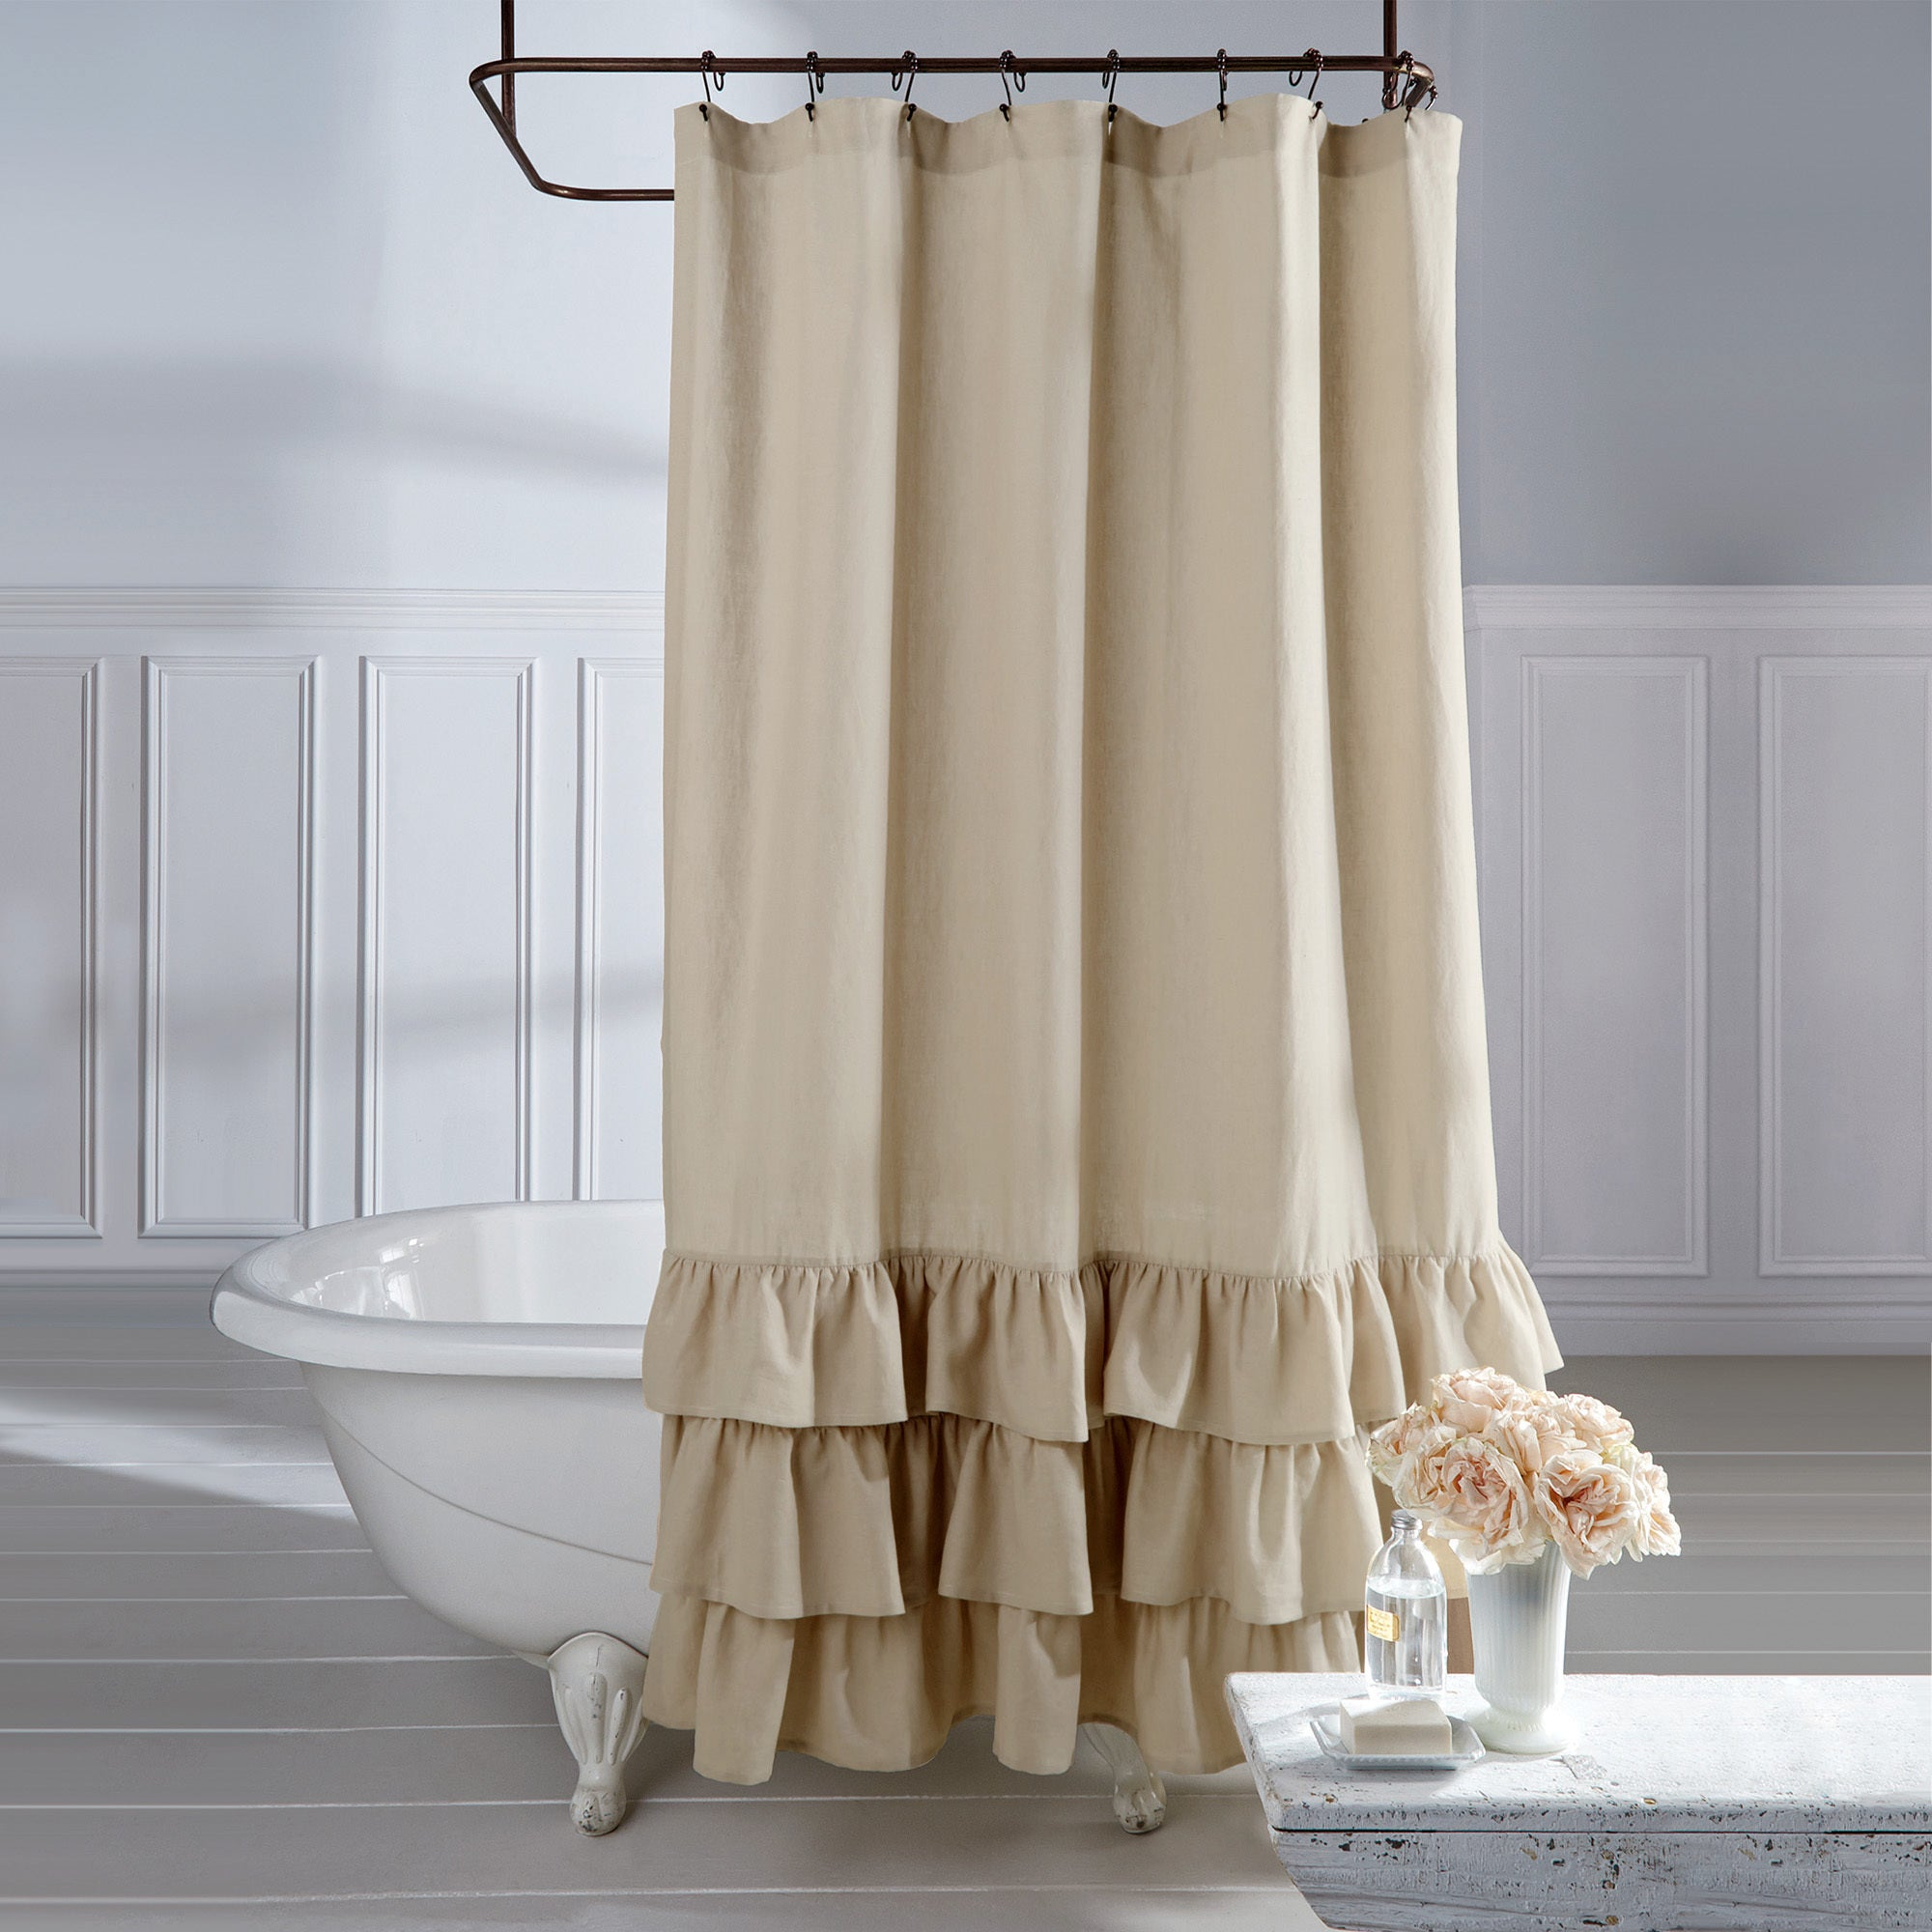 image natural styleimage curtains looking style washed shower home linen stripe echelonhome vintage detail belgian